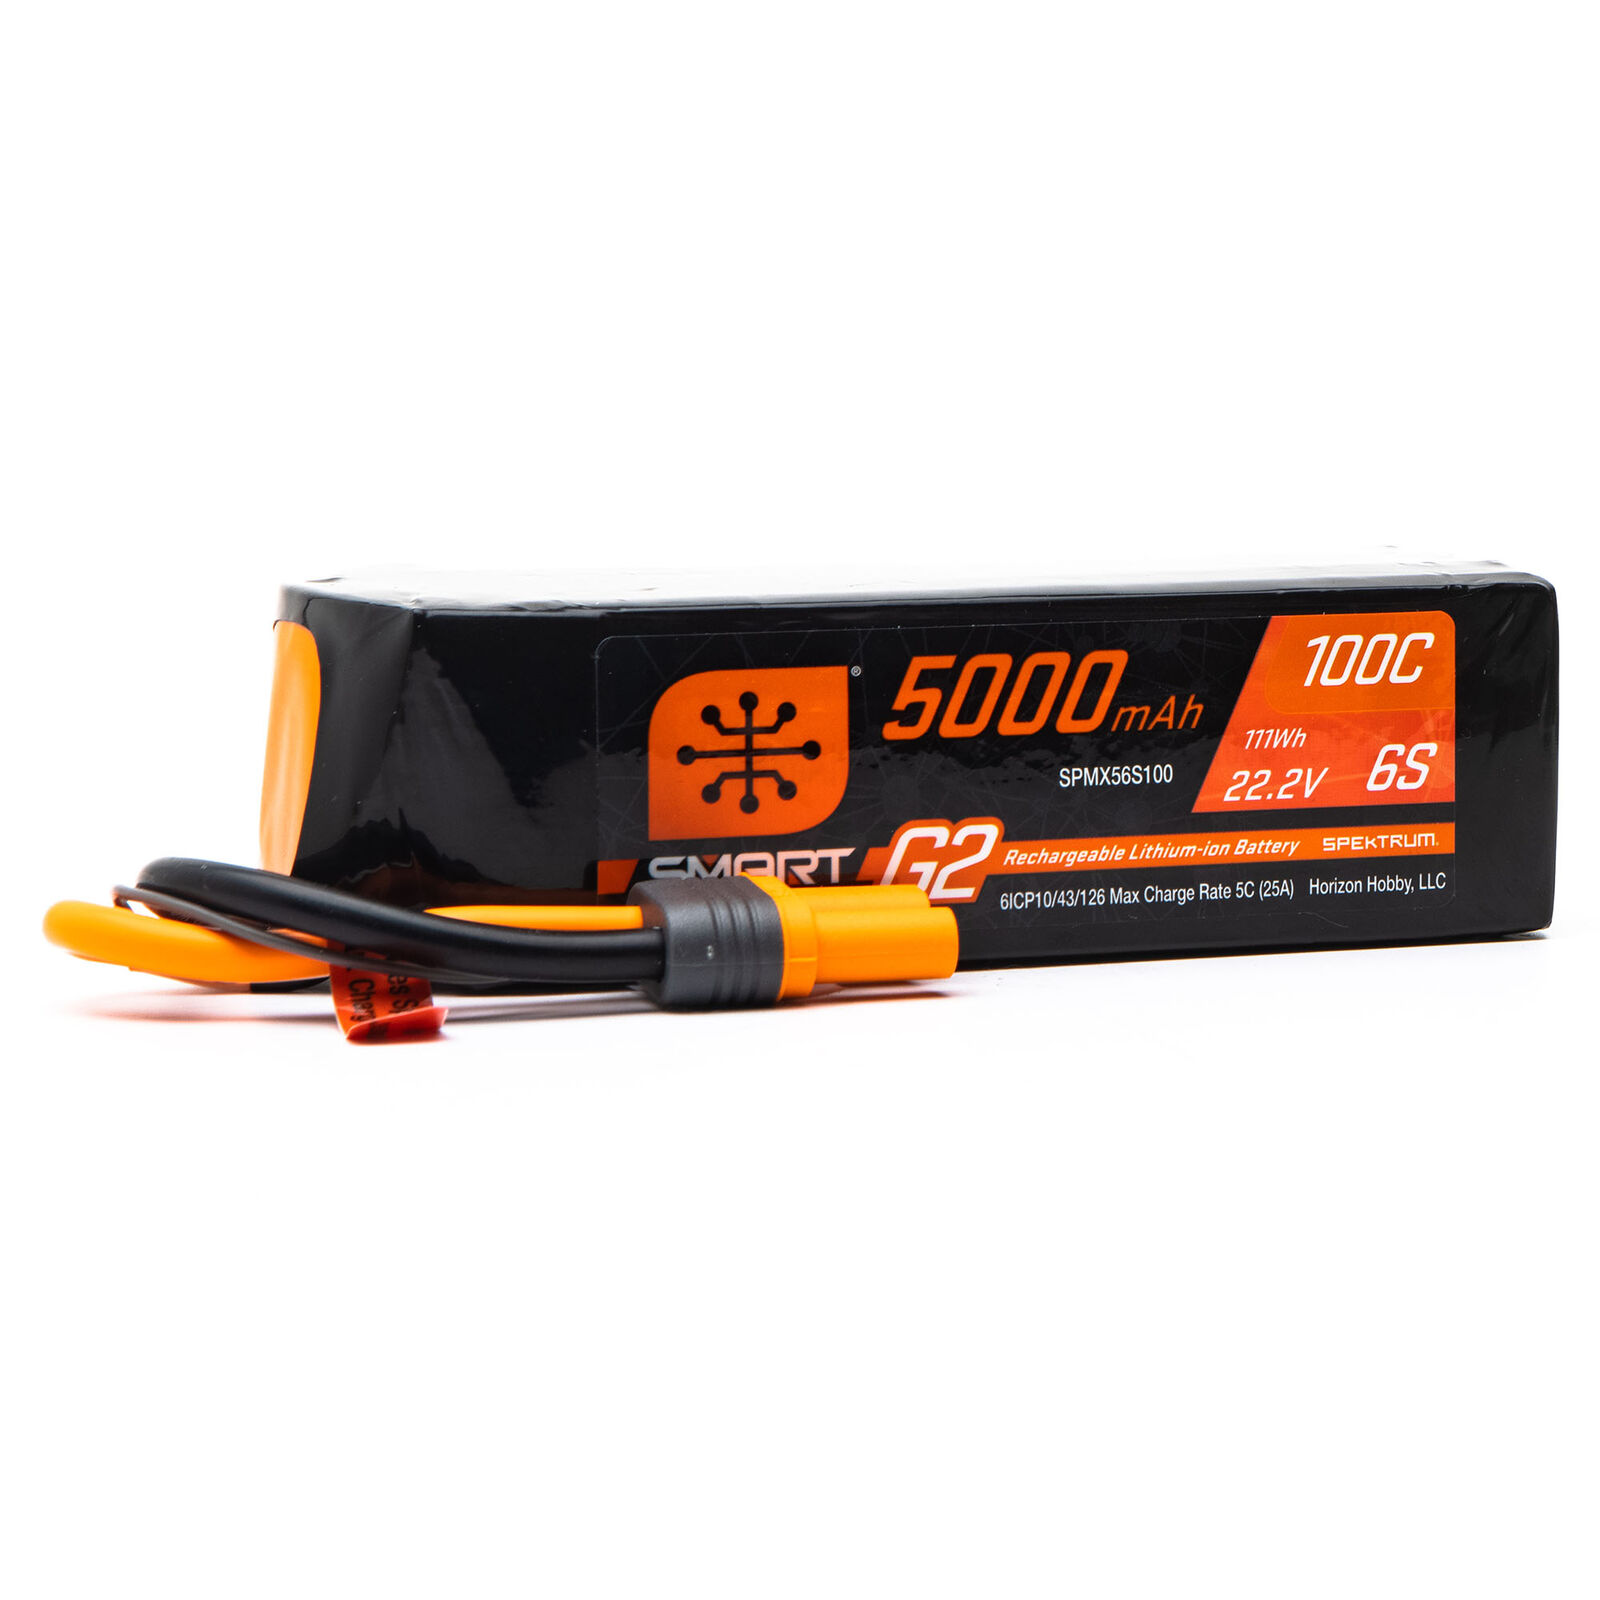 22.2V 5000mAh 6S 100C Smart G2 LiPo Battery: IC5